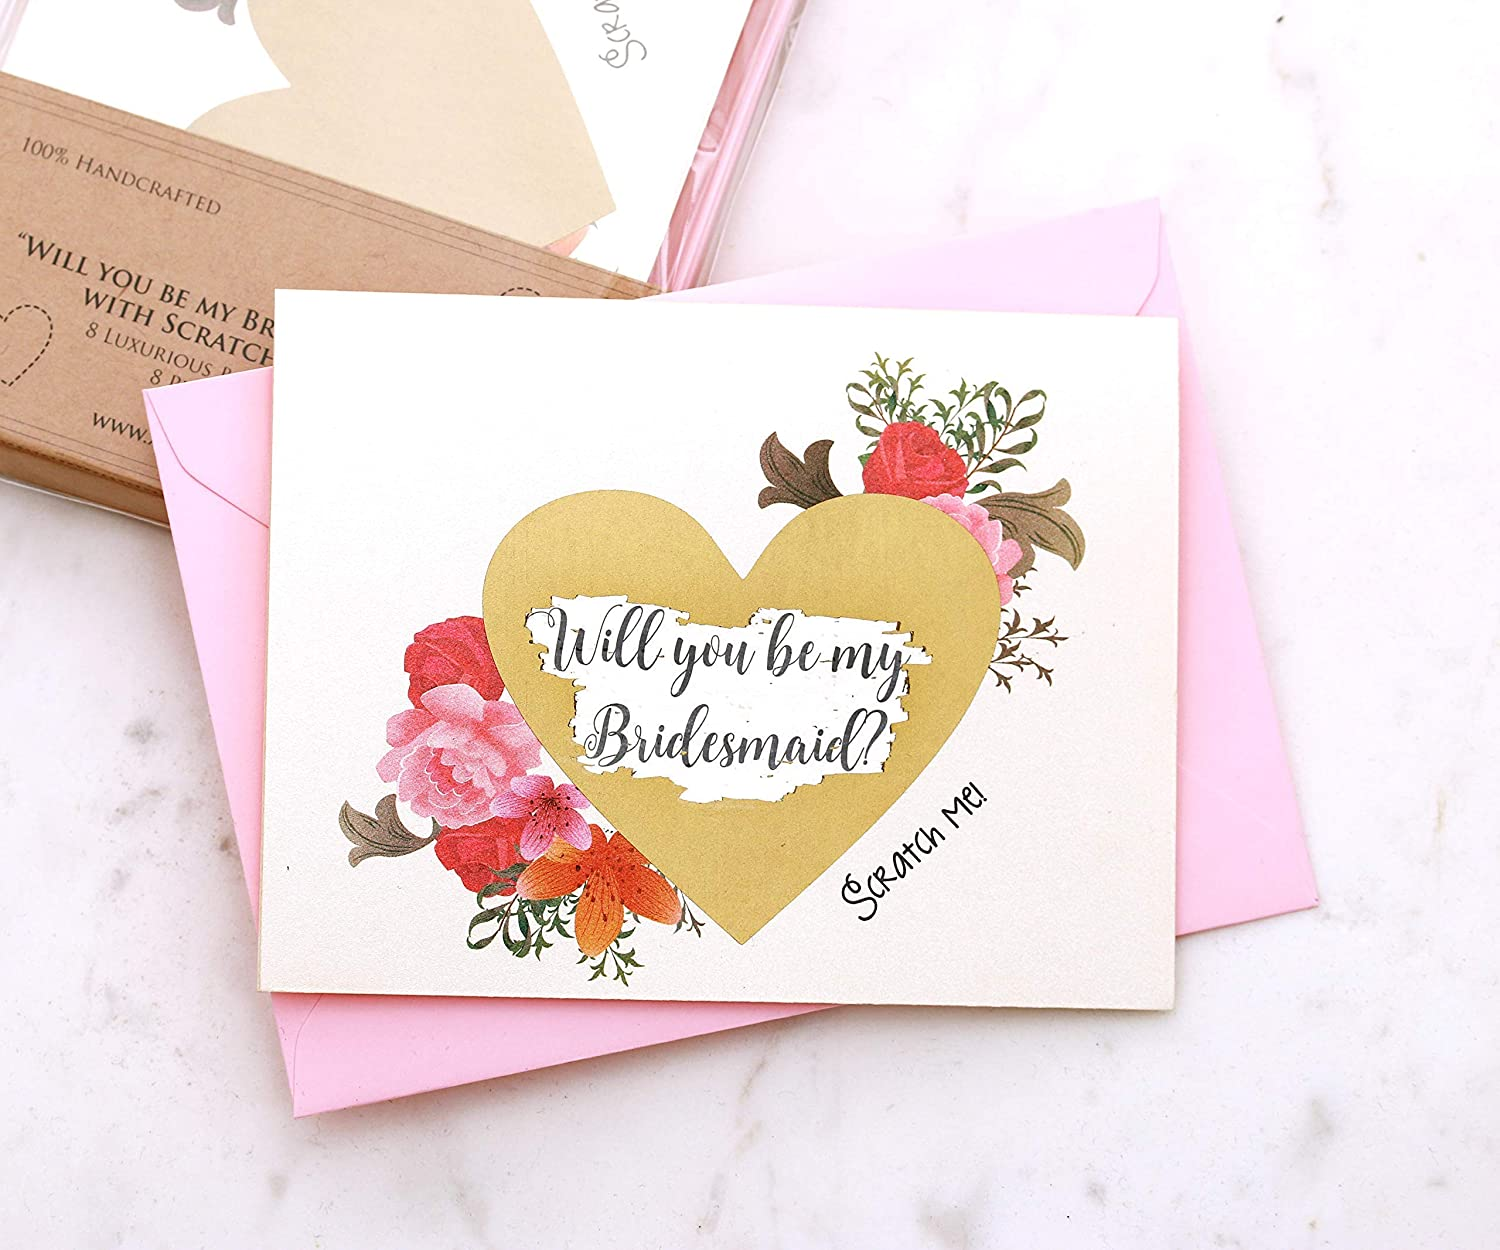 Will You Be My Bridesmaid Scratch-Off Card Maid of Honor Proposal Card Floral Wedding Invitation